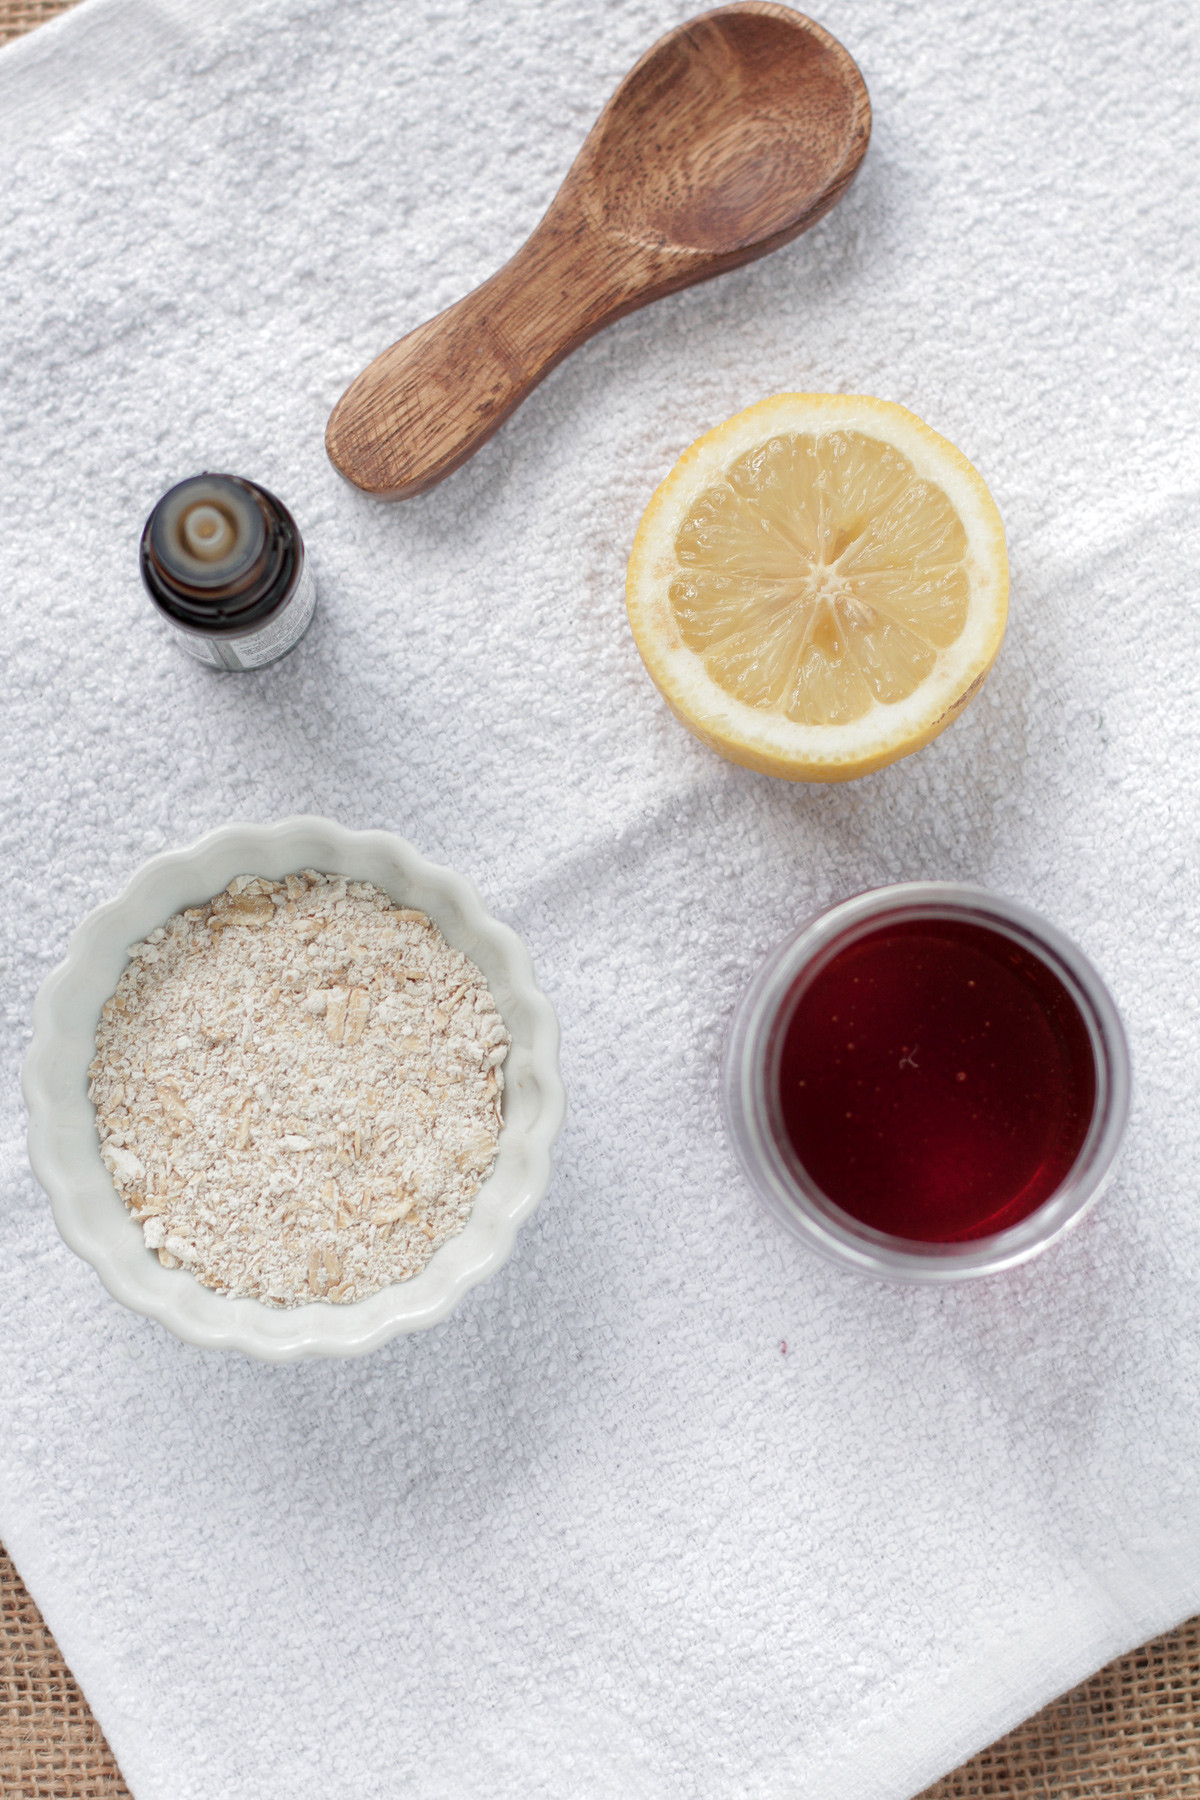 Best ideas about Oatmeal Mask DIY . Save or Pin Homemade Honey Oatmeal Acne Mask Live Simply Now.